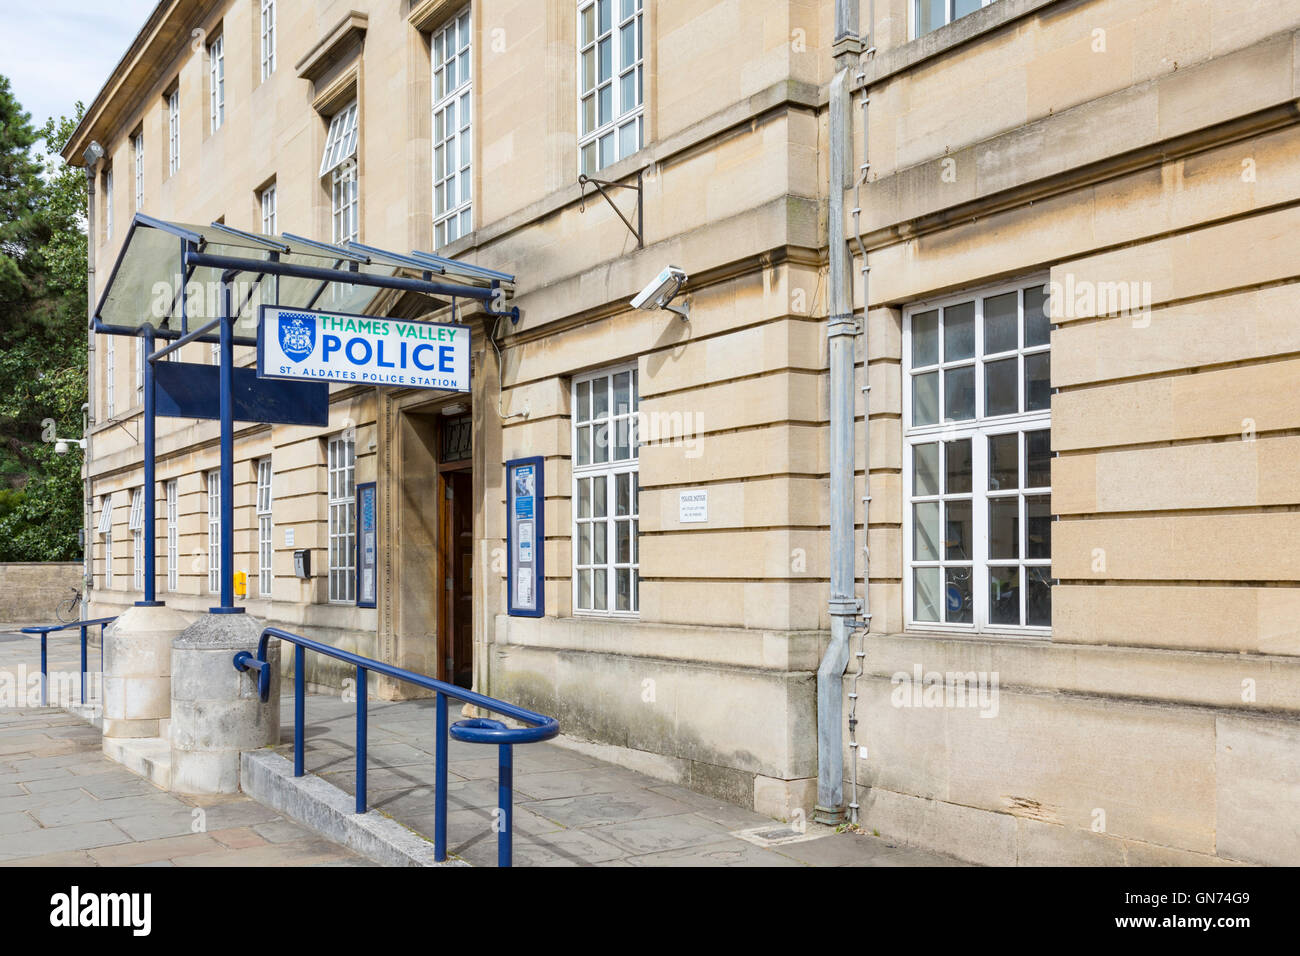 St Aldates Police Station, Thames Valley Police, Oxford, Oxfordshire, England, UK - Stock Image